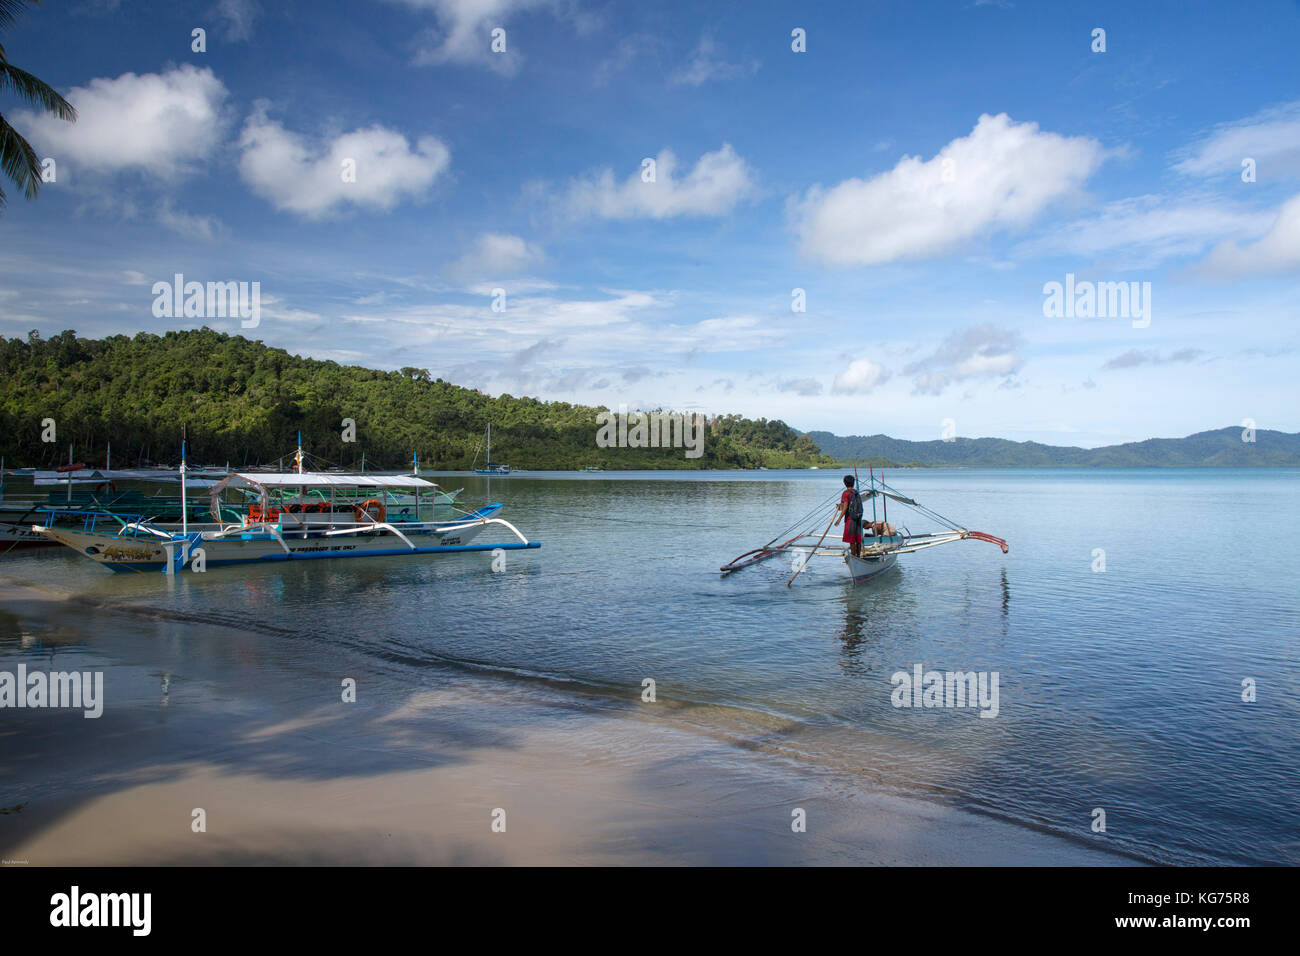 Port Barton beach with outrigger island hopping boats, Palawan, Philippines - Stock Image